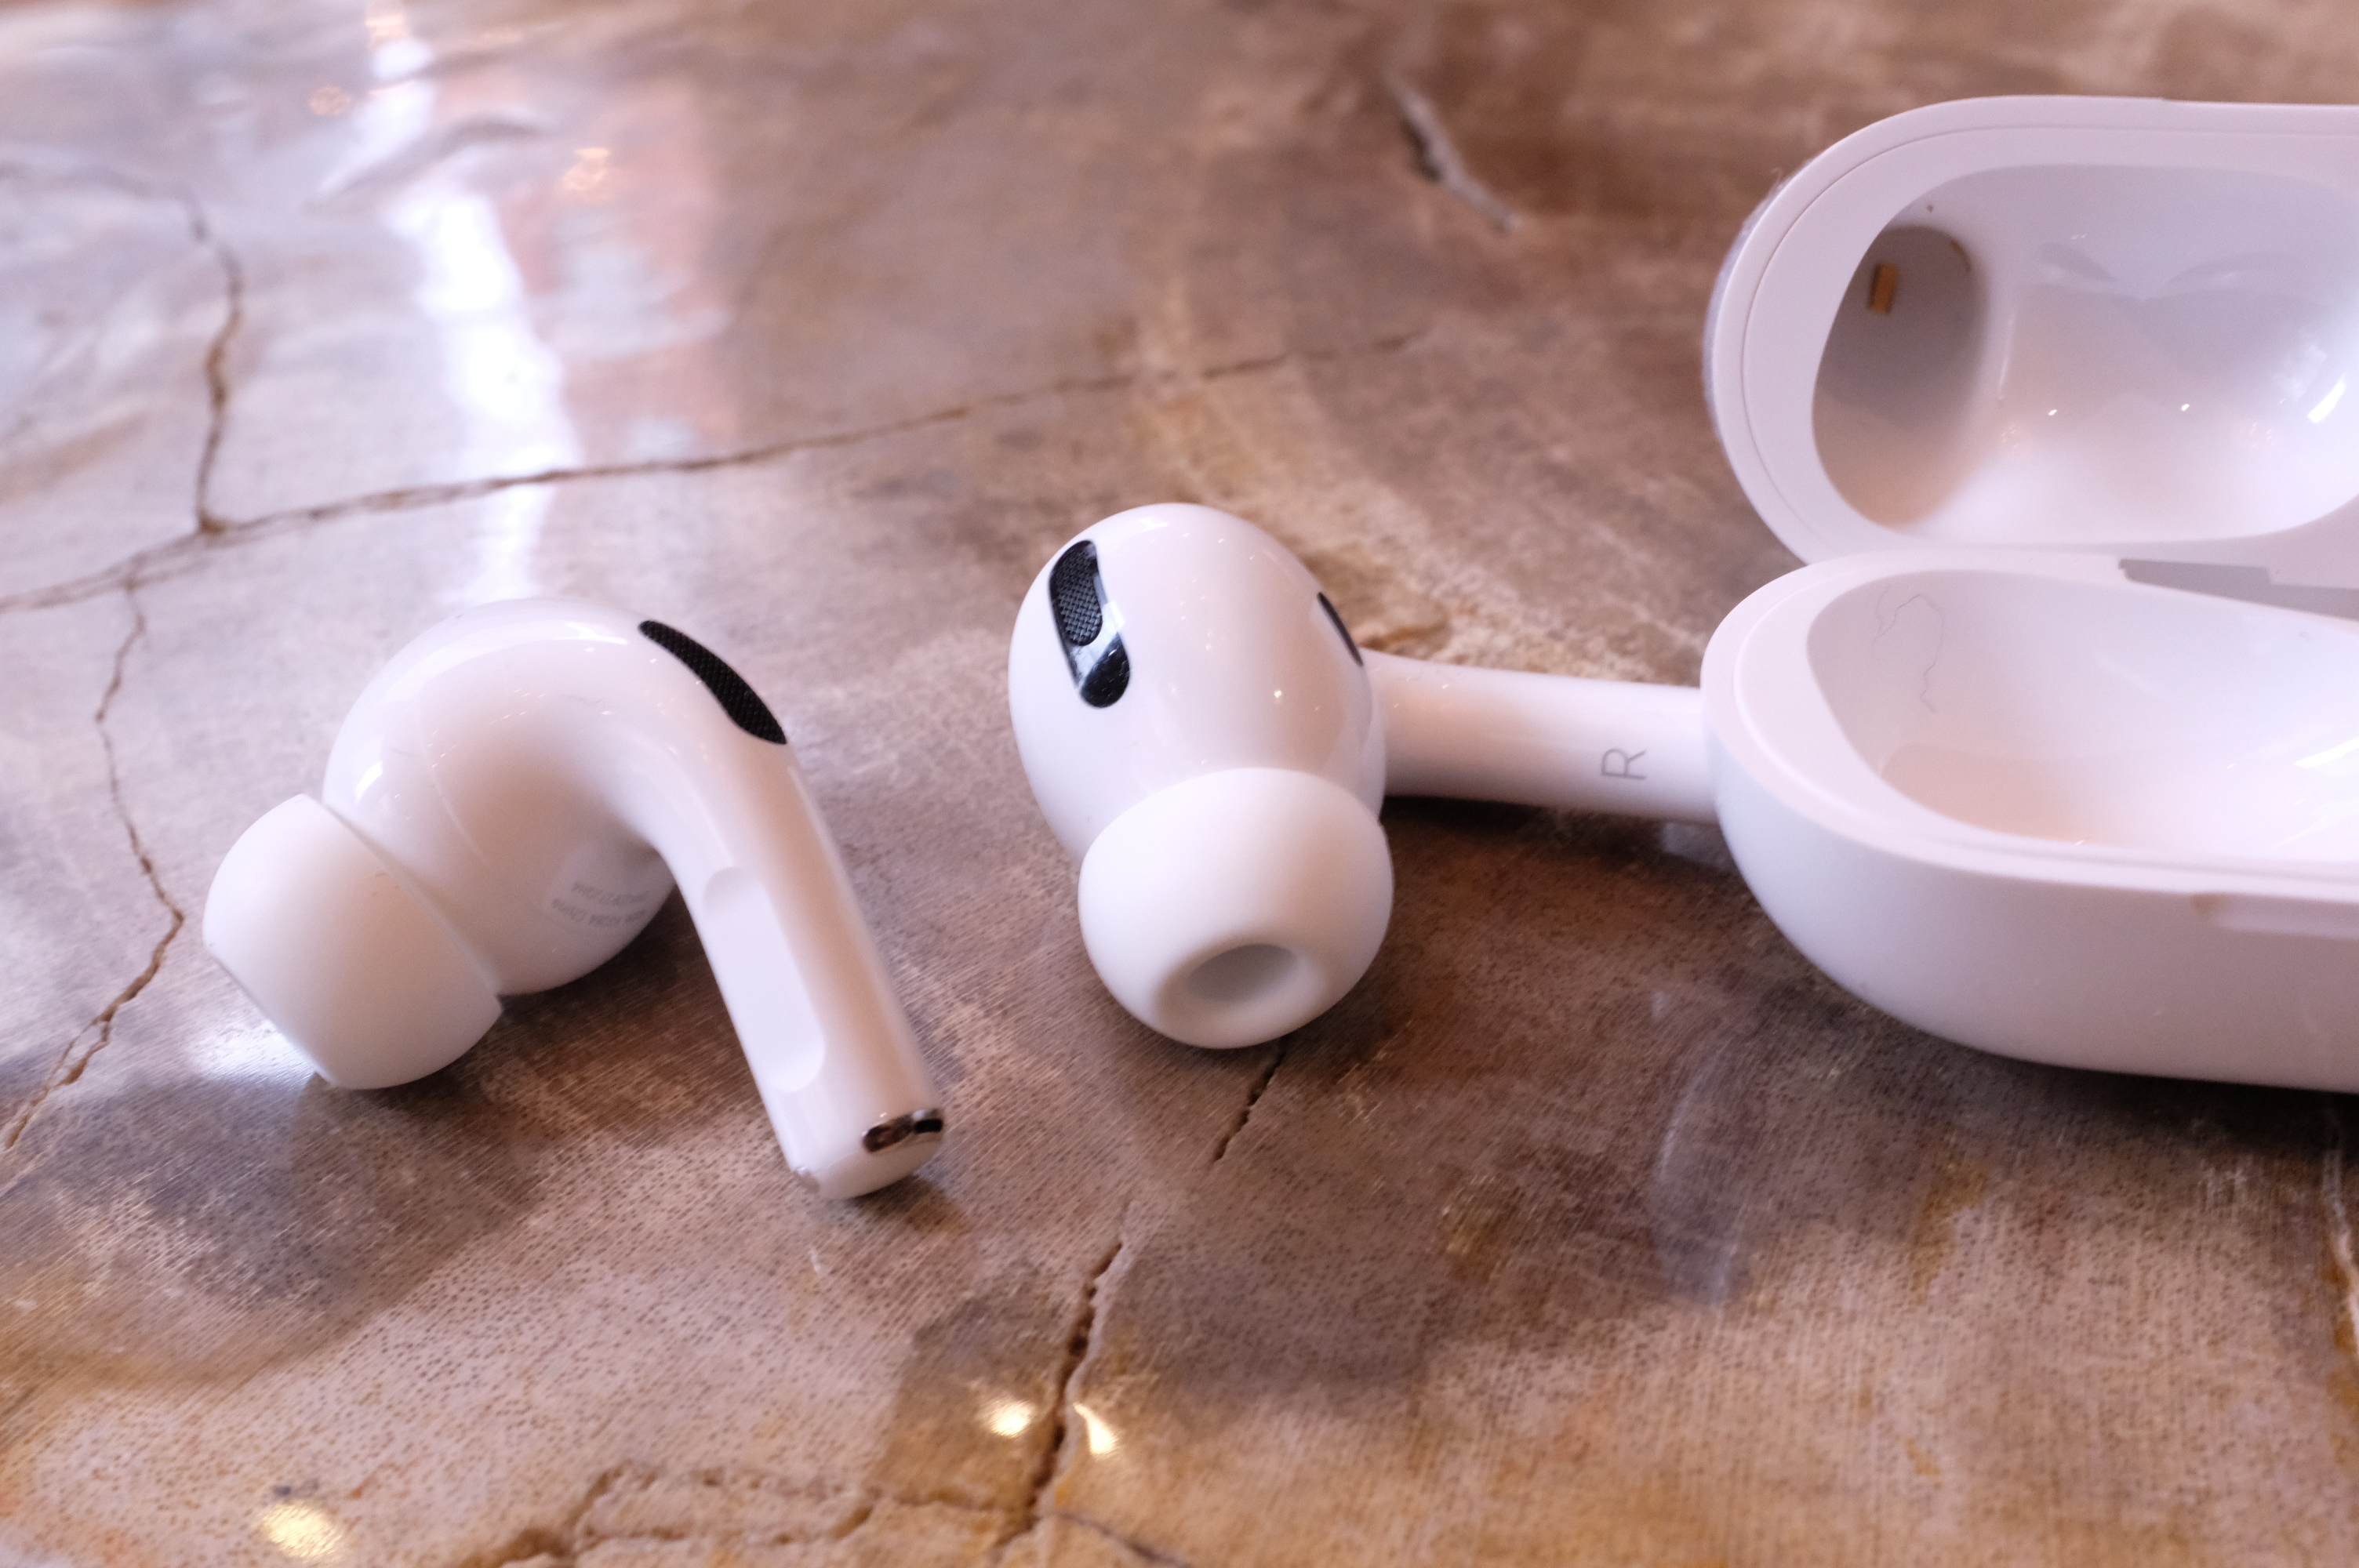 Apple to replace defective AirPods Pro for free